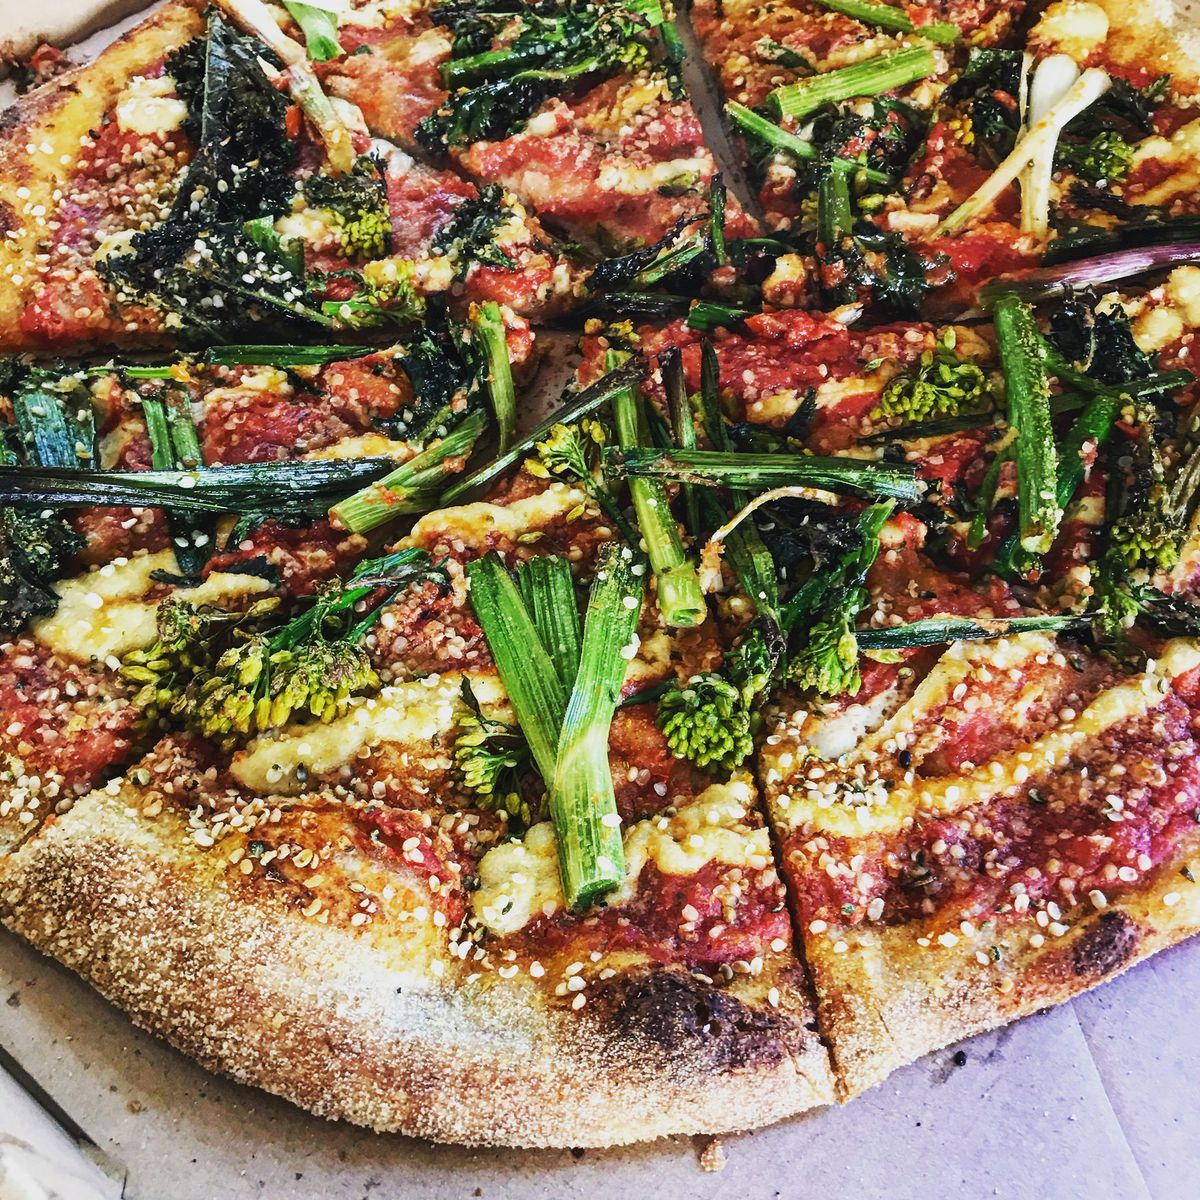 A round sourdough crust pizza topped with broccoli florets, green onions, cheese and marinara